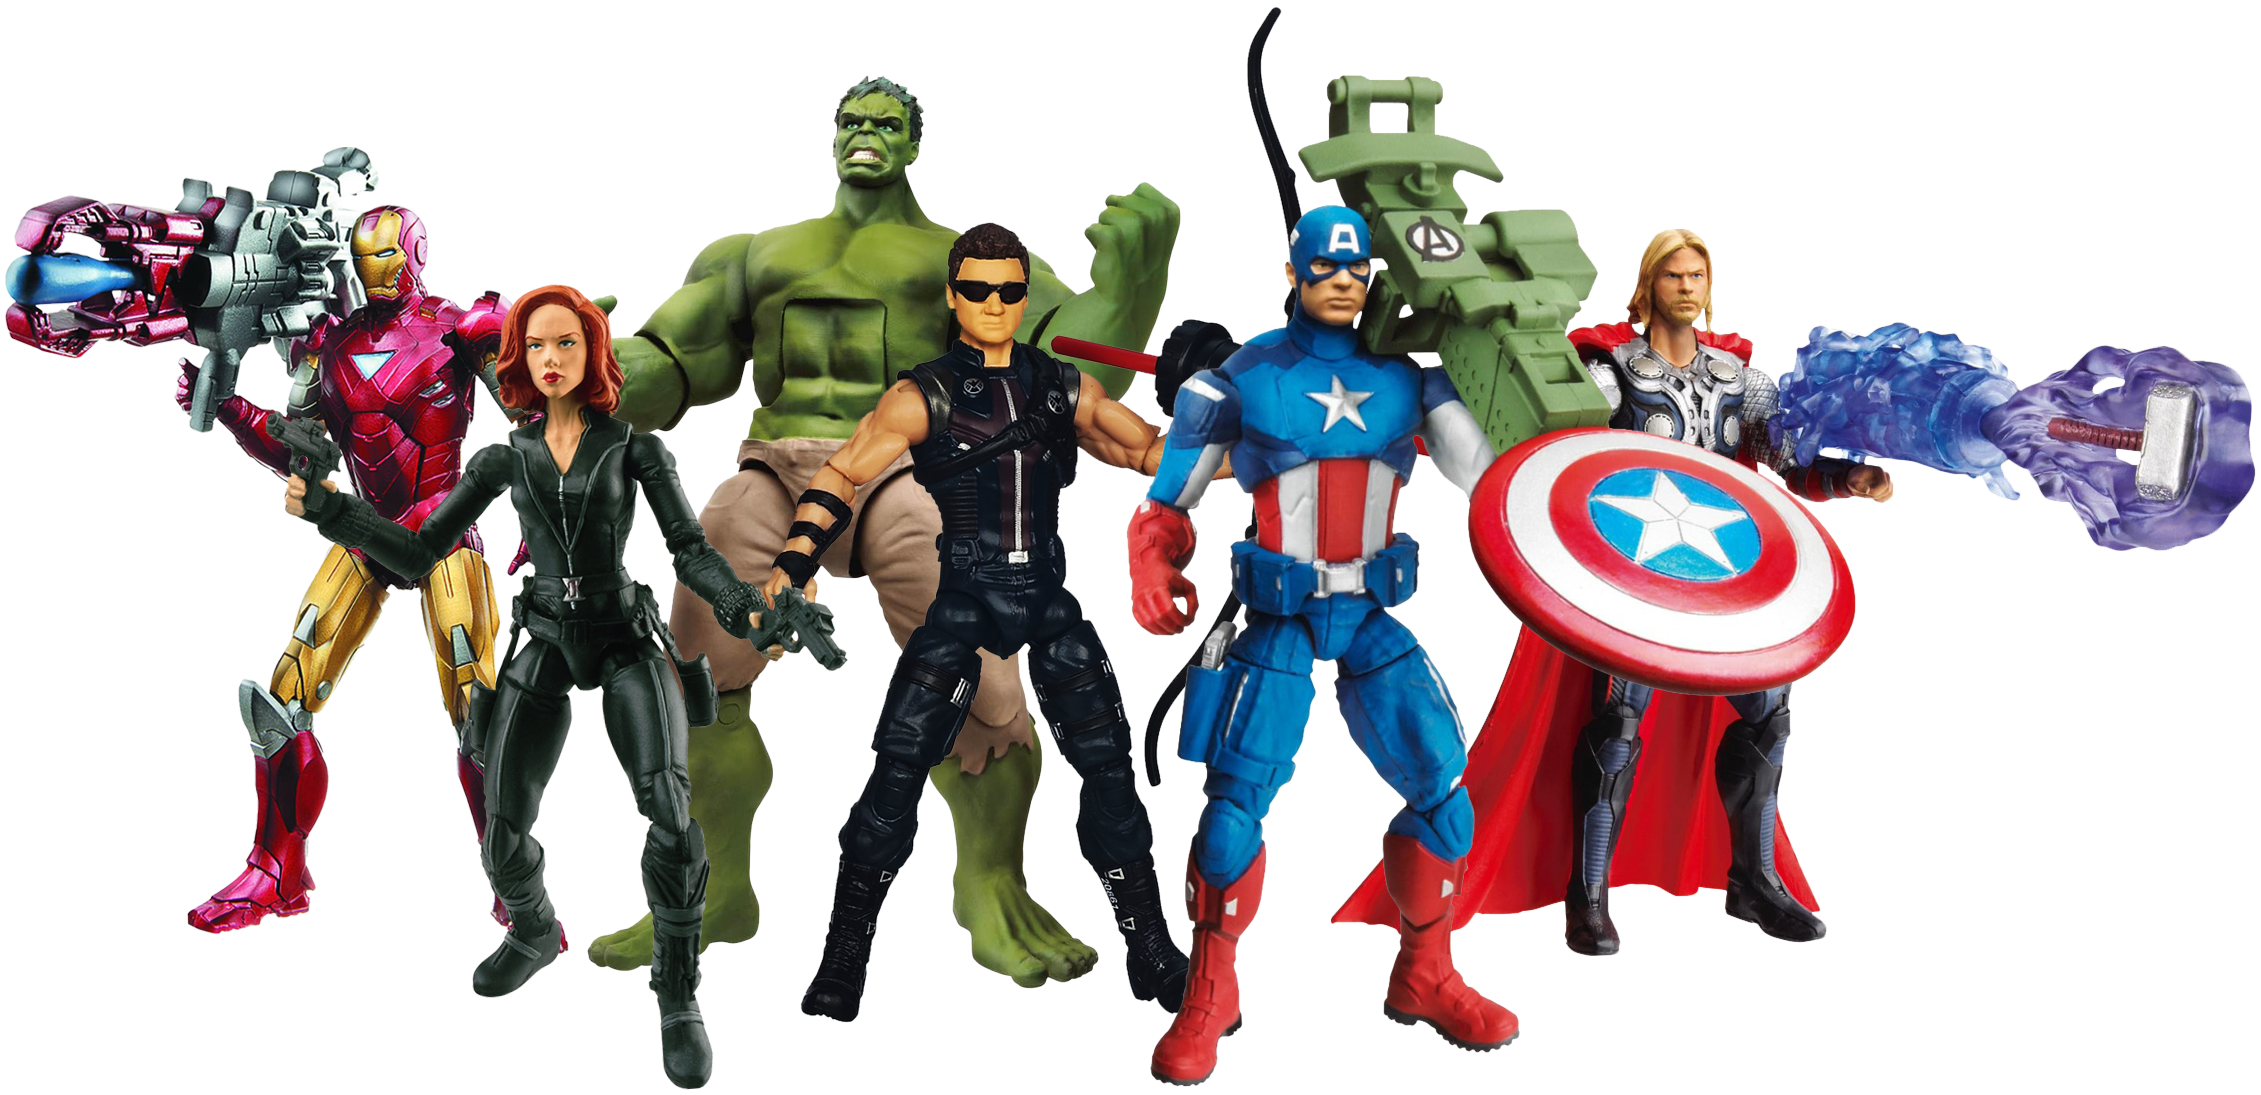 Avengers Free Png Image PNG Image